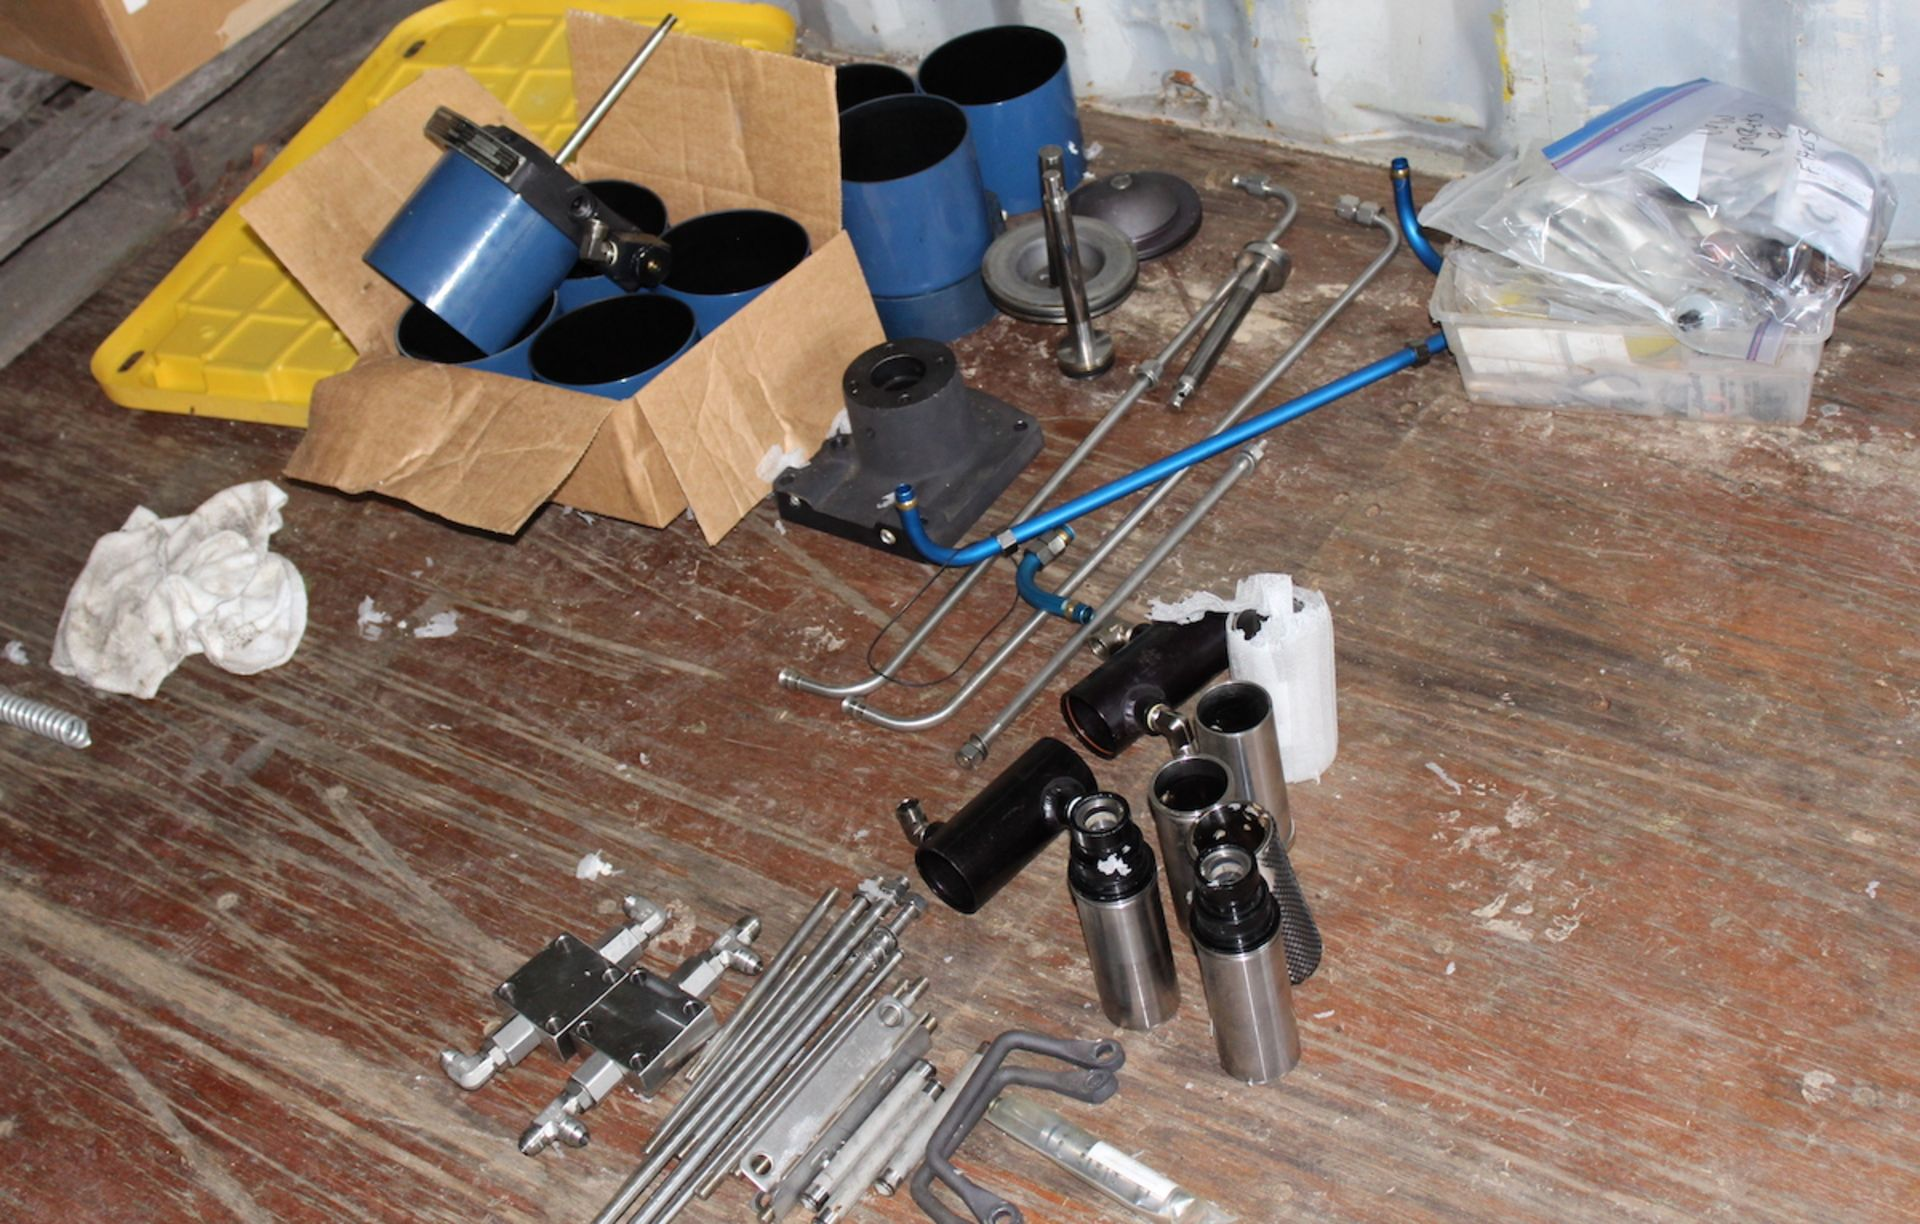 Used-Apeks 2x 5L 5000 PSI 5L Extraction System. Holds up to 3 lbs of dry/ground material - Image 6 of 6